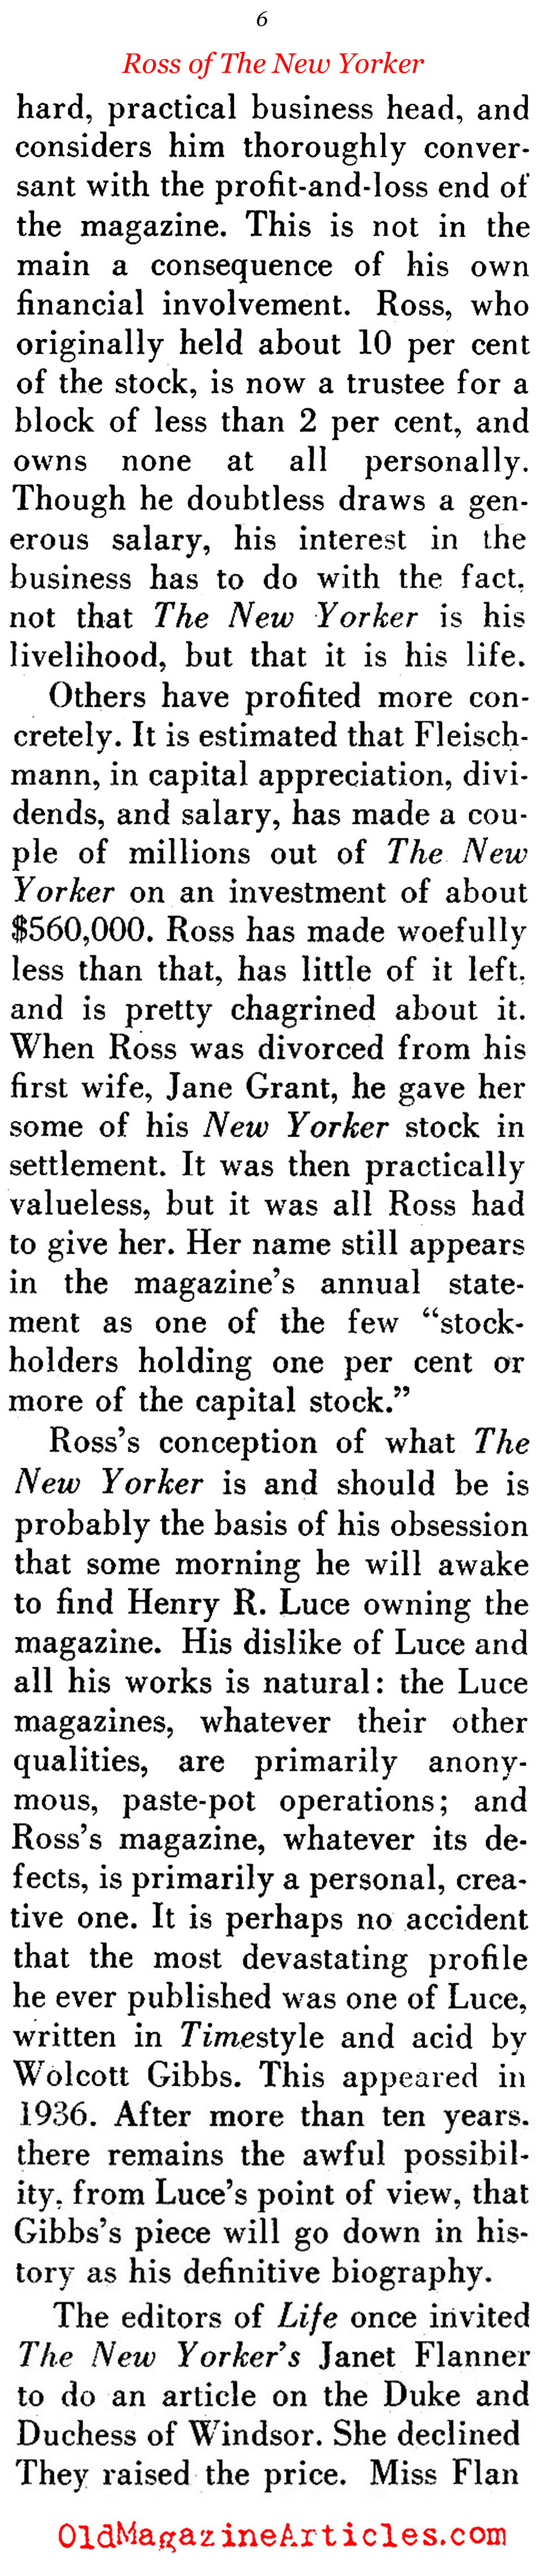 Ross of The New Yorker: Part II ('48 Magazine, 1948)